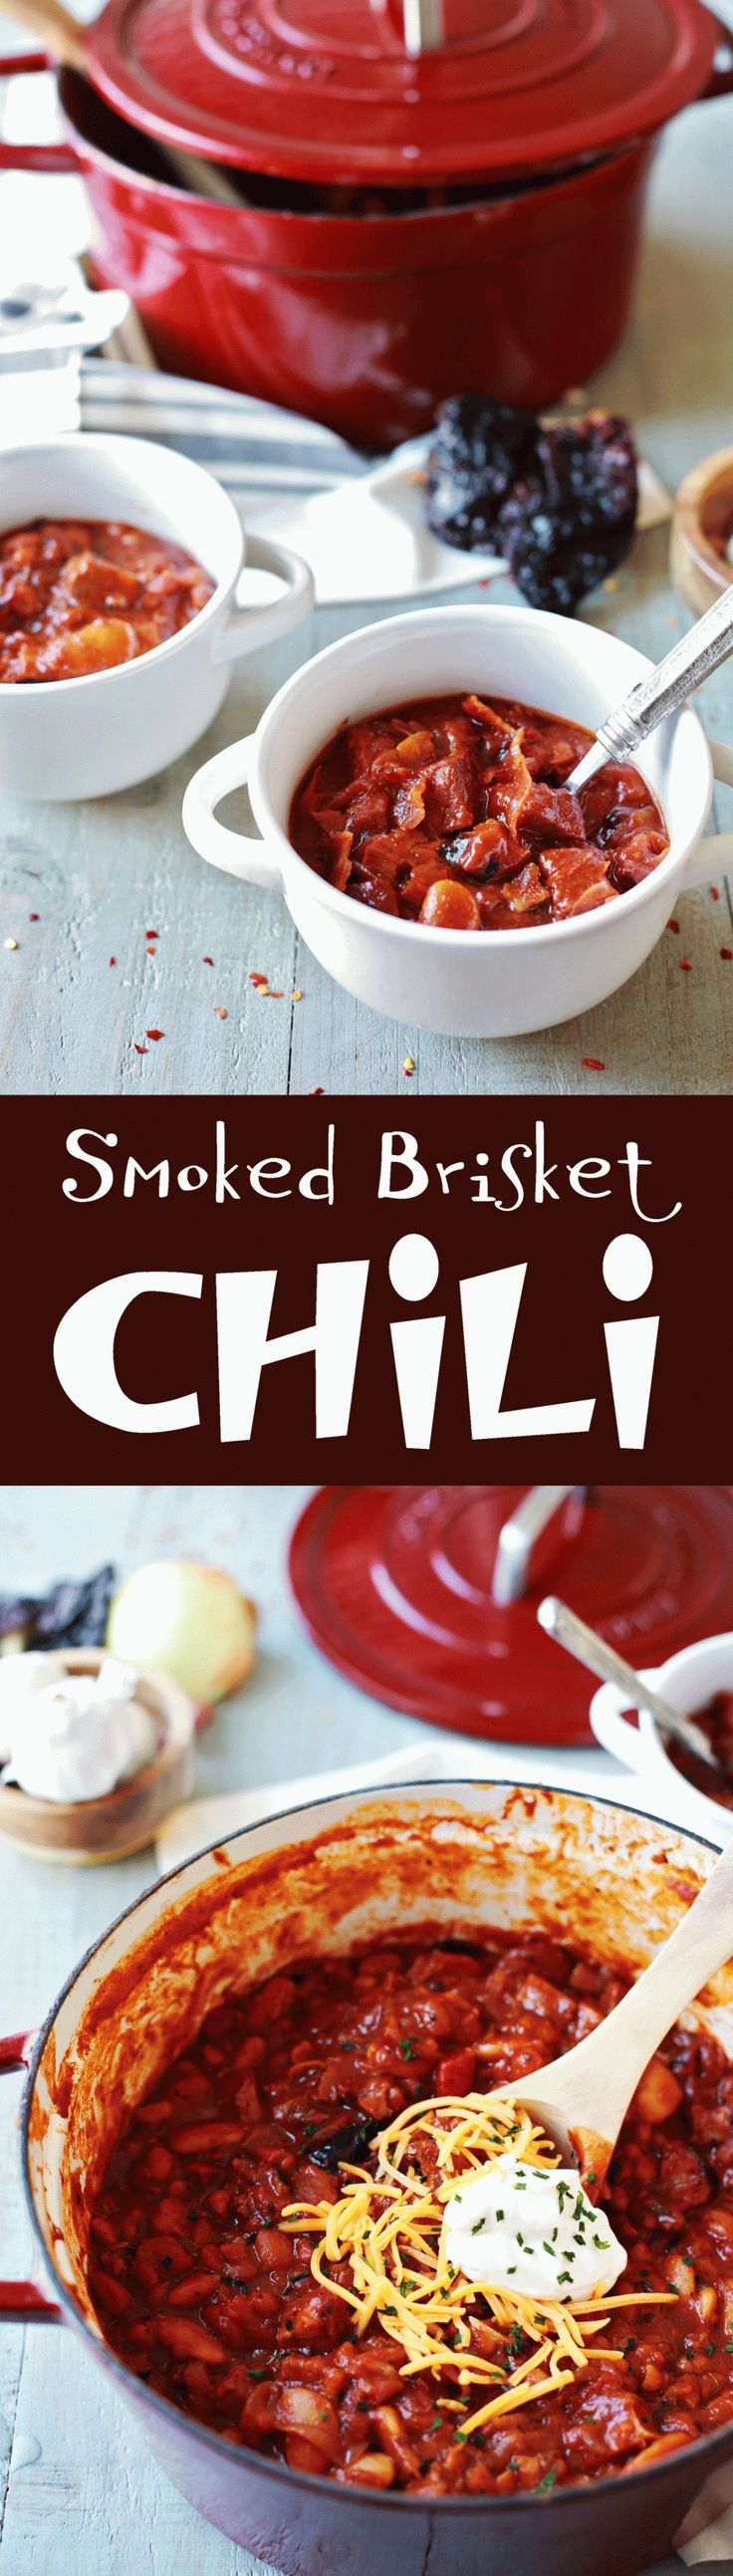 Best Chili EVER!!! I've won 3 contests with this smoked brisket chili!!!